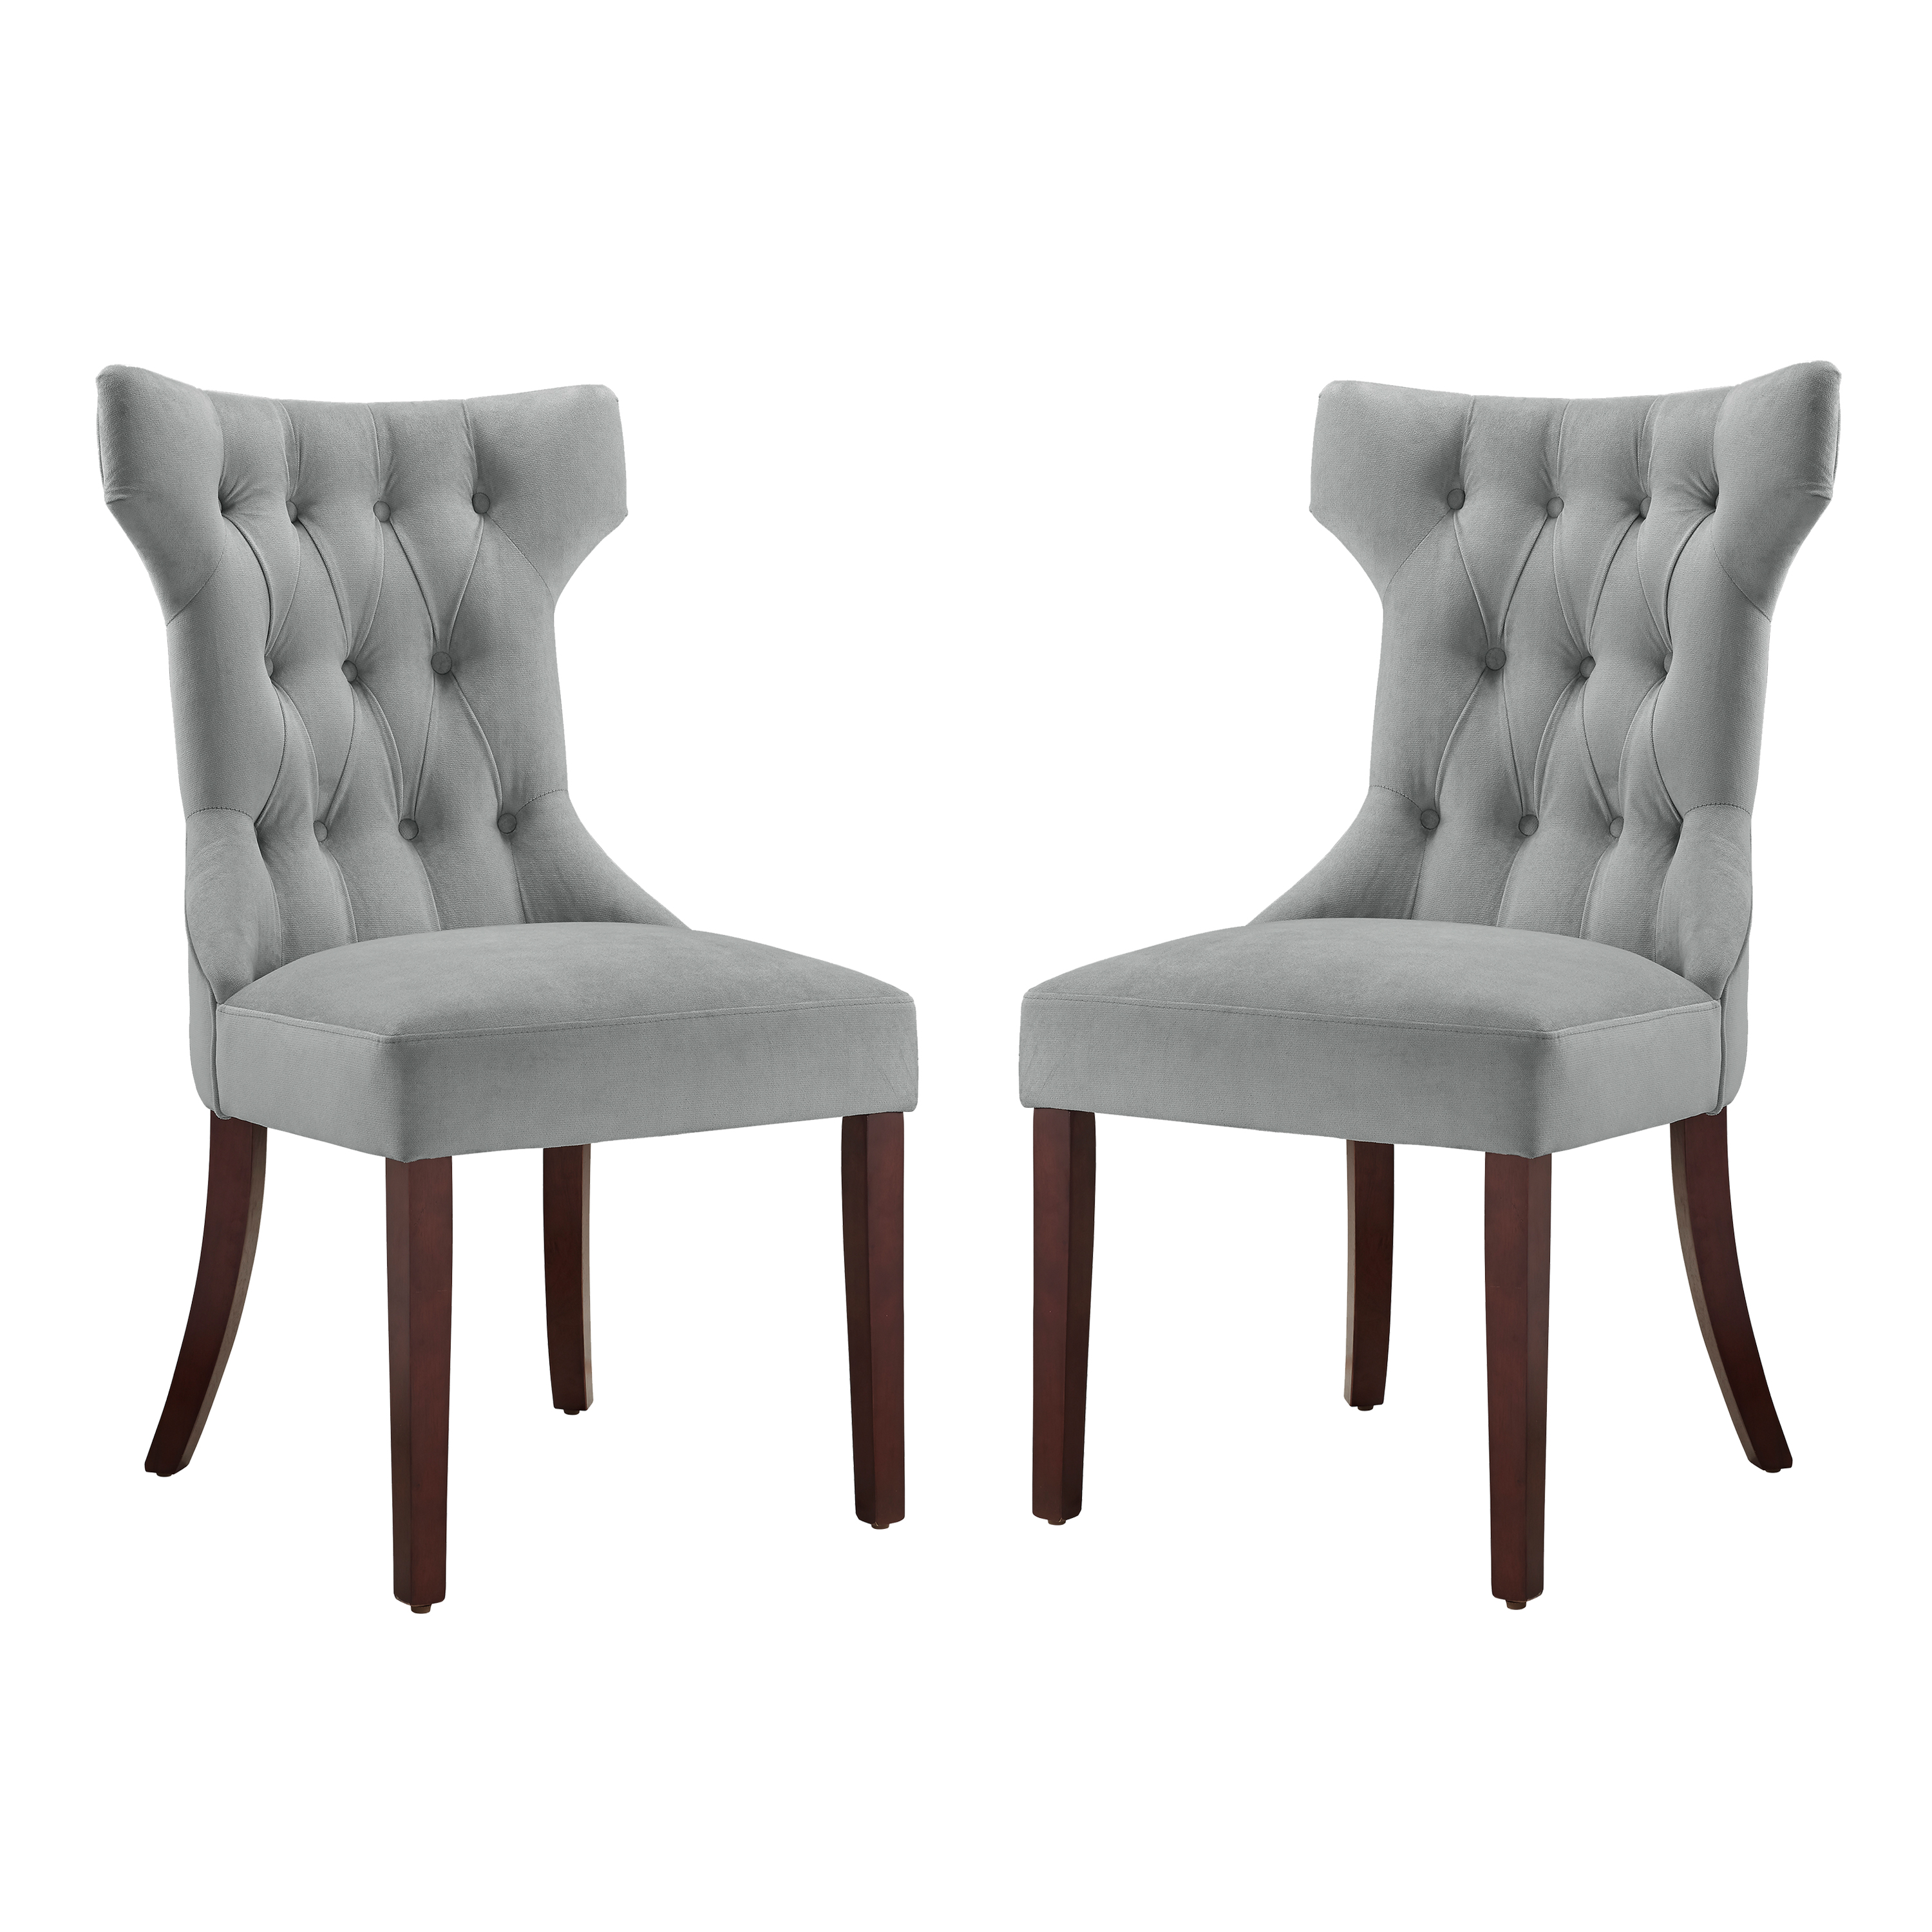 Dorel Living Clairborne Tufted Upholestered Dining Chair, Set of 2